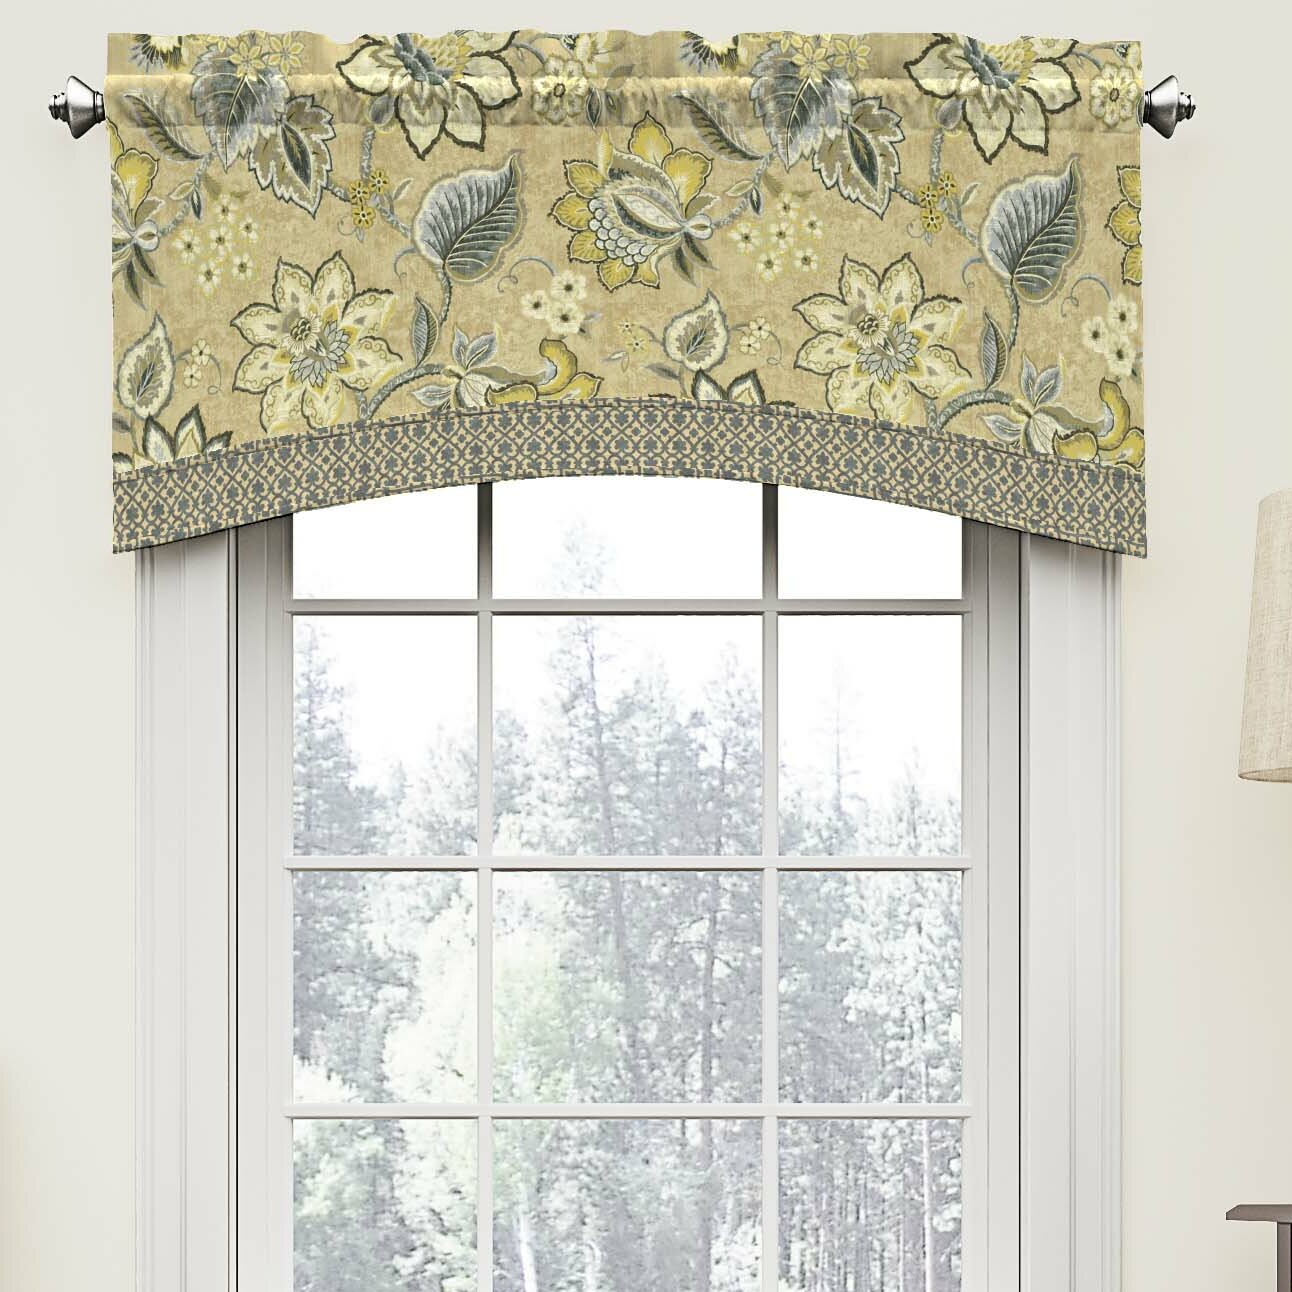 "Waverly Brighton Blossom 52"" Arched Curtain Valance"